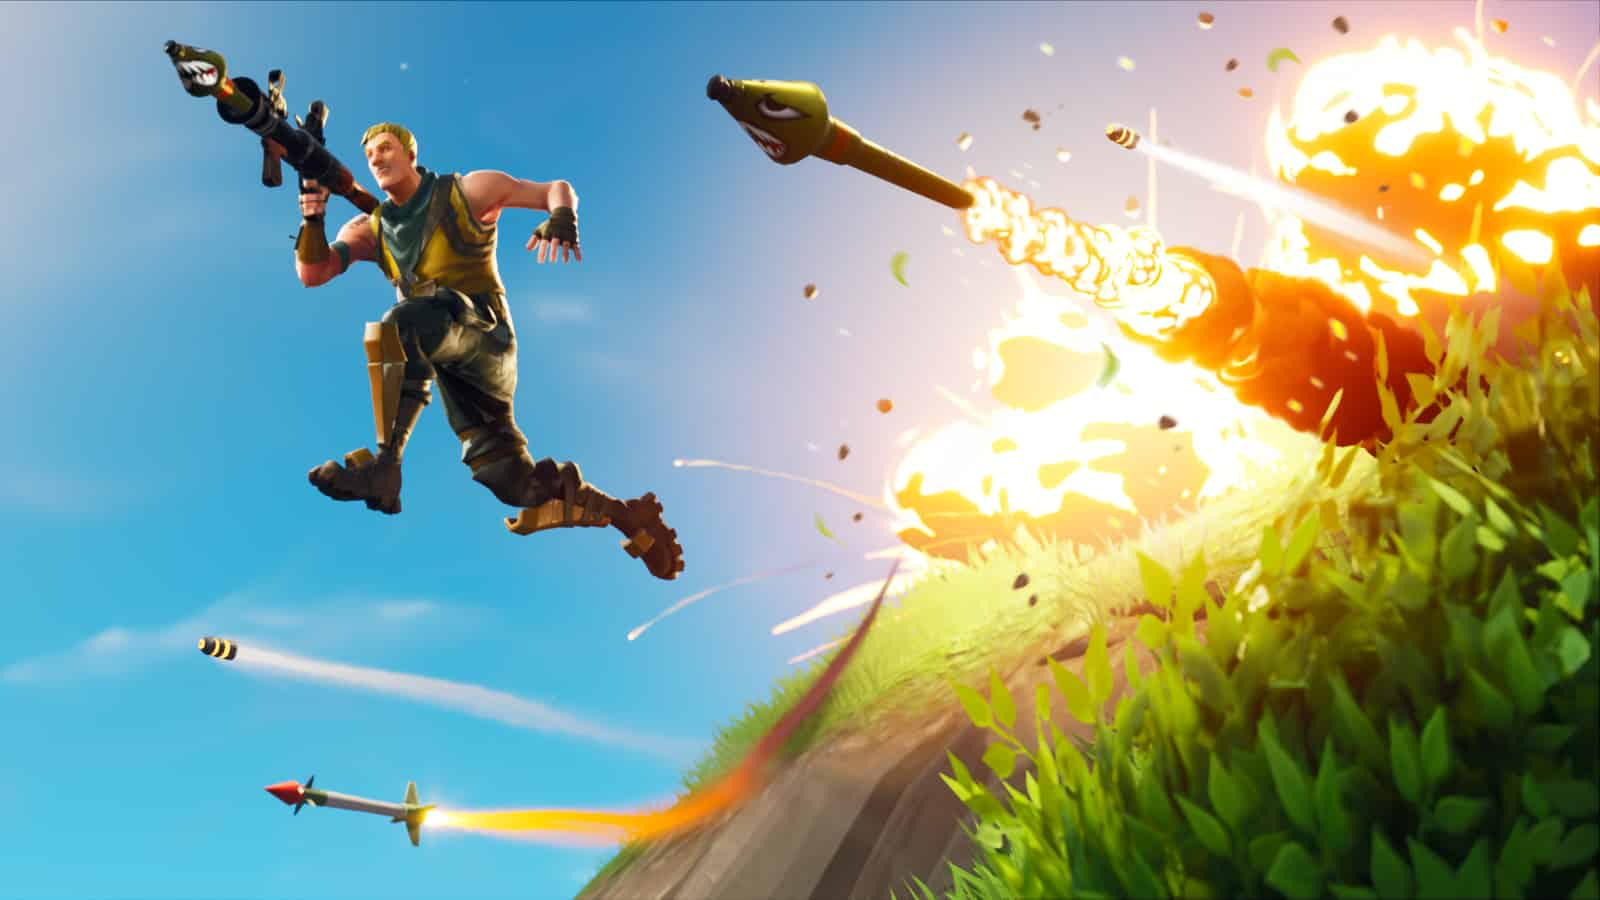 Epic Games Fortnite Apple Pay antitrust lawsuit monopoly 1984 IBM video references included